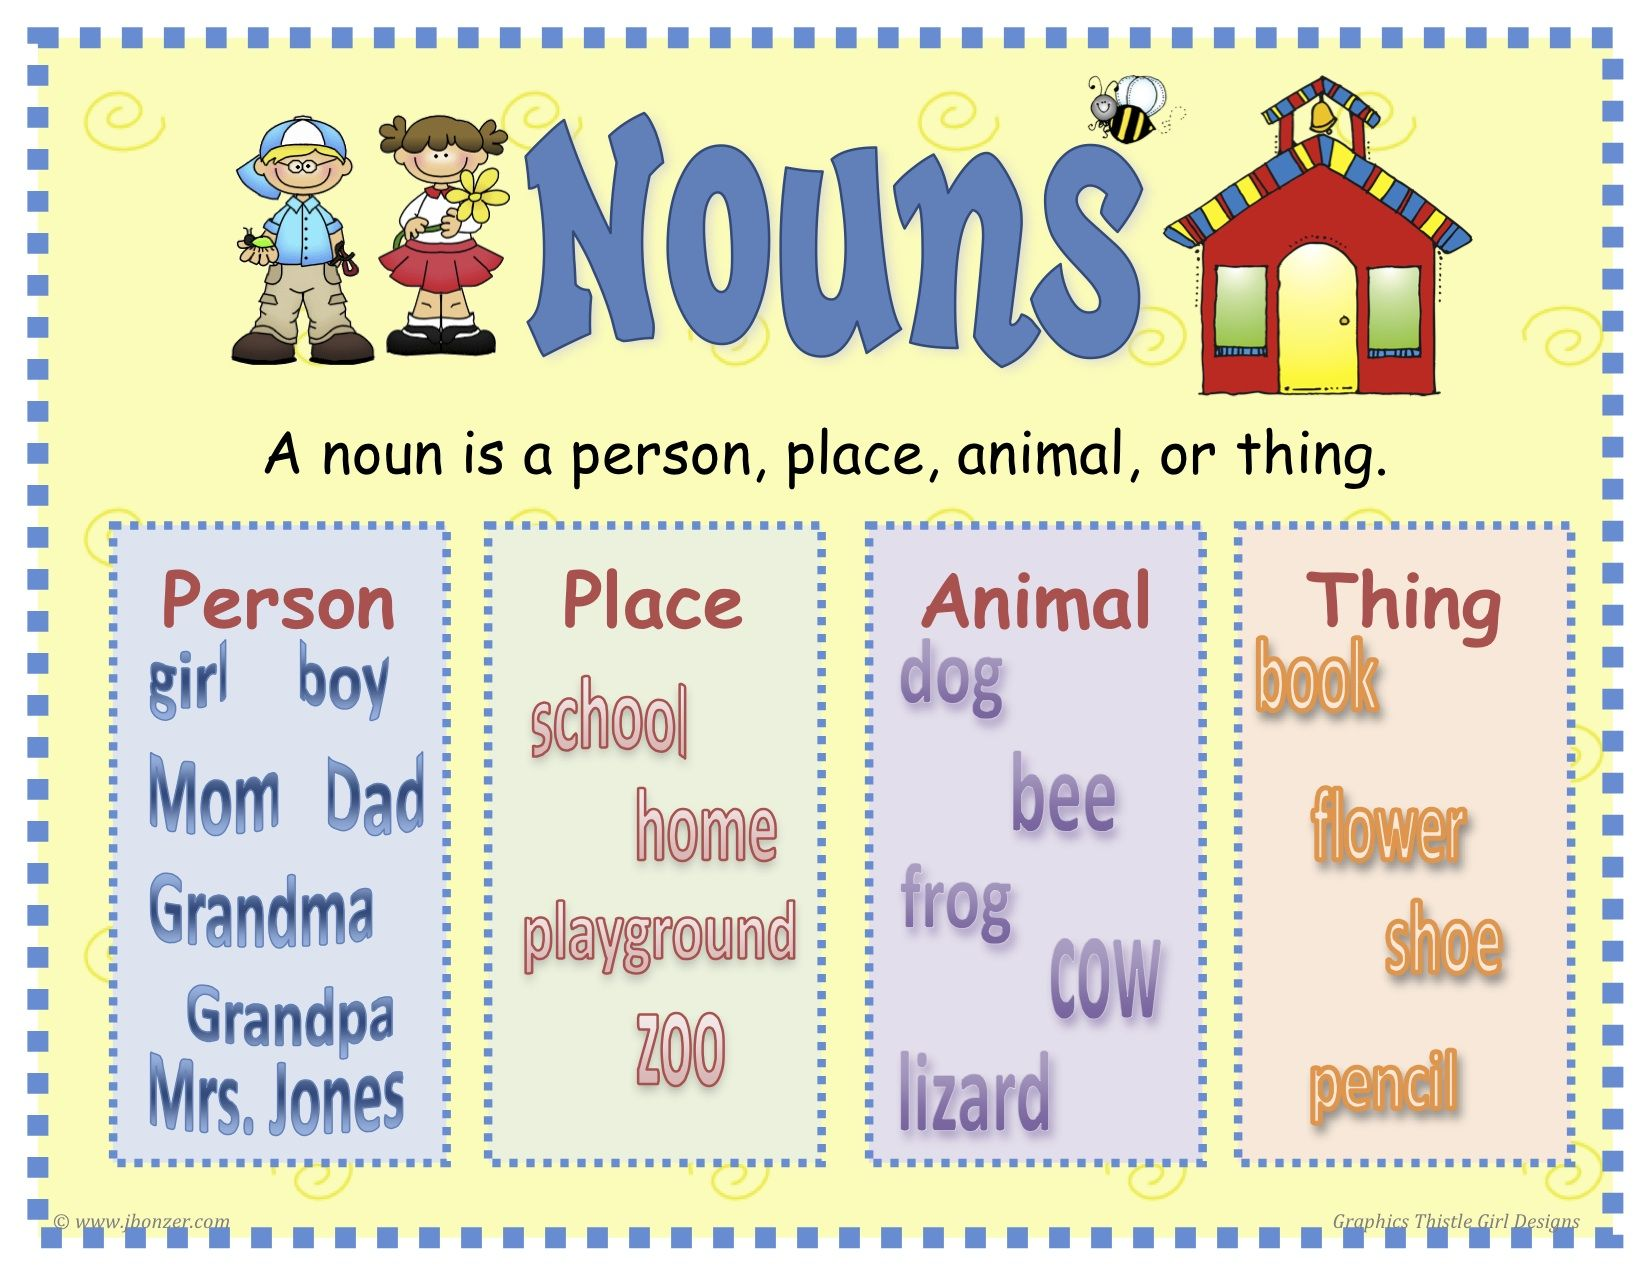 Worksheet Noun List For Kids noun list for kids scalien mikyu free worksheet